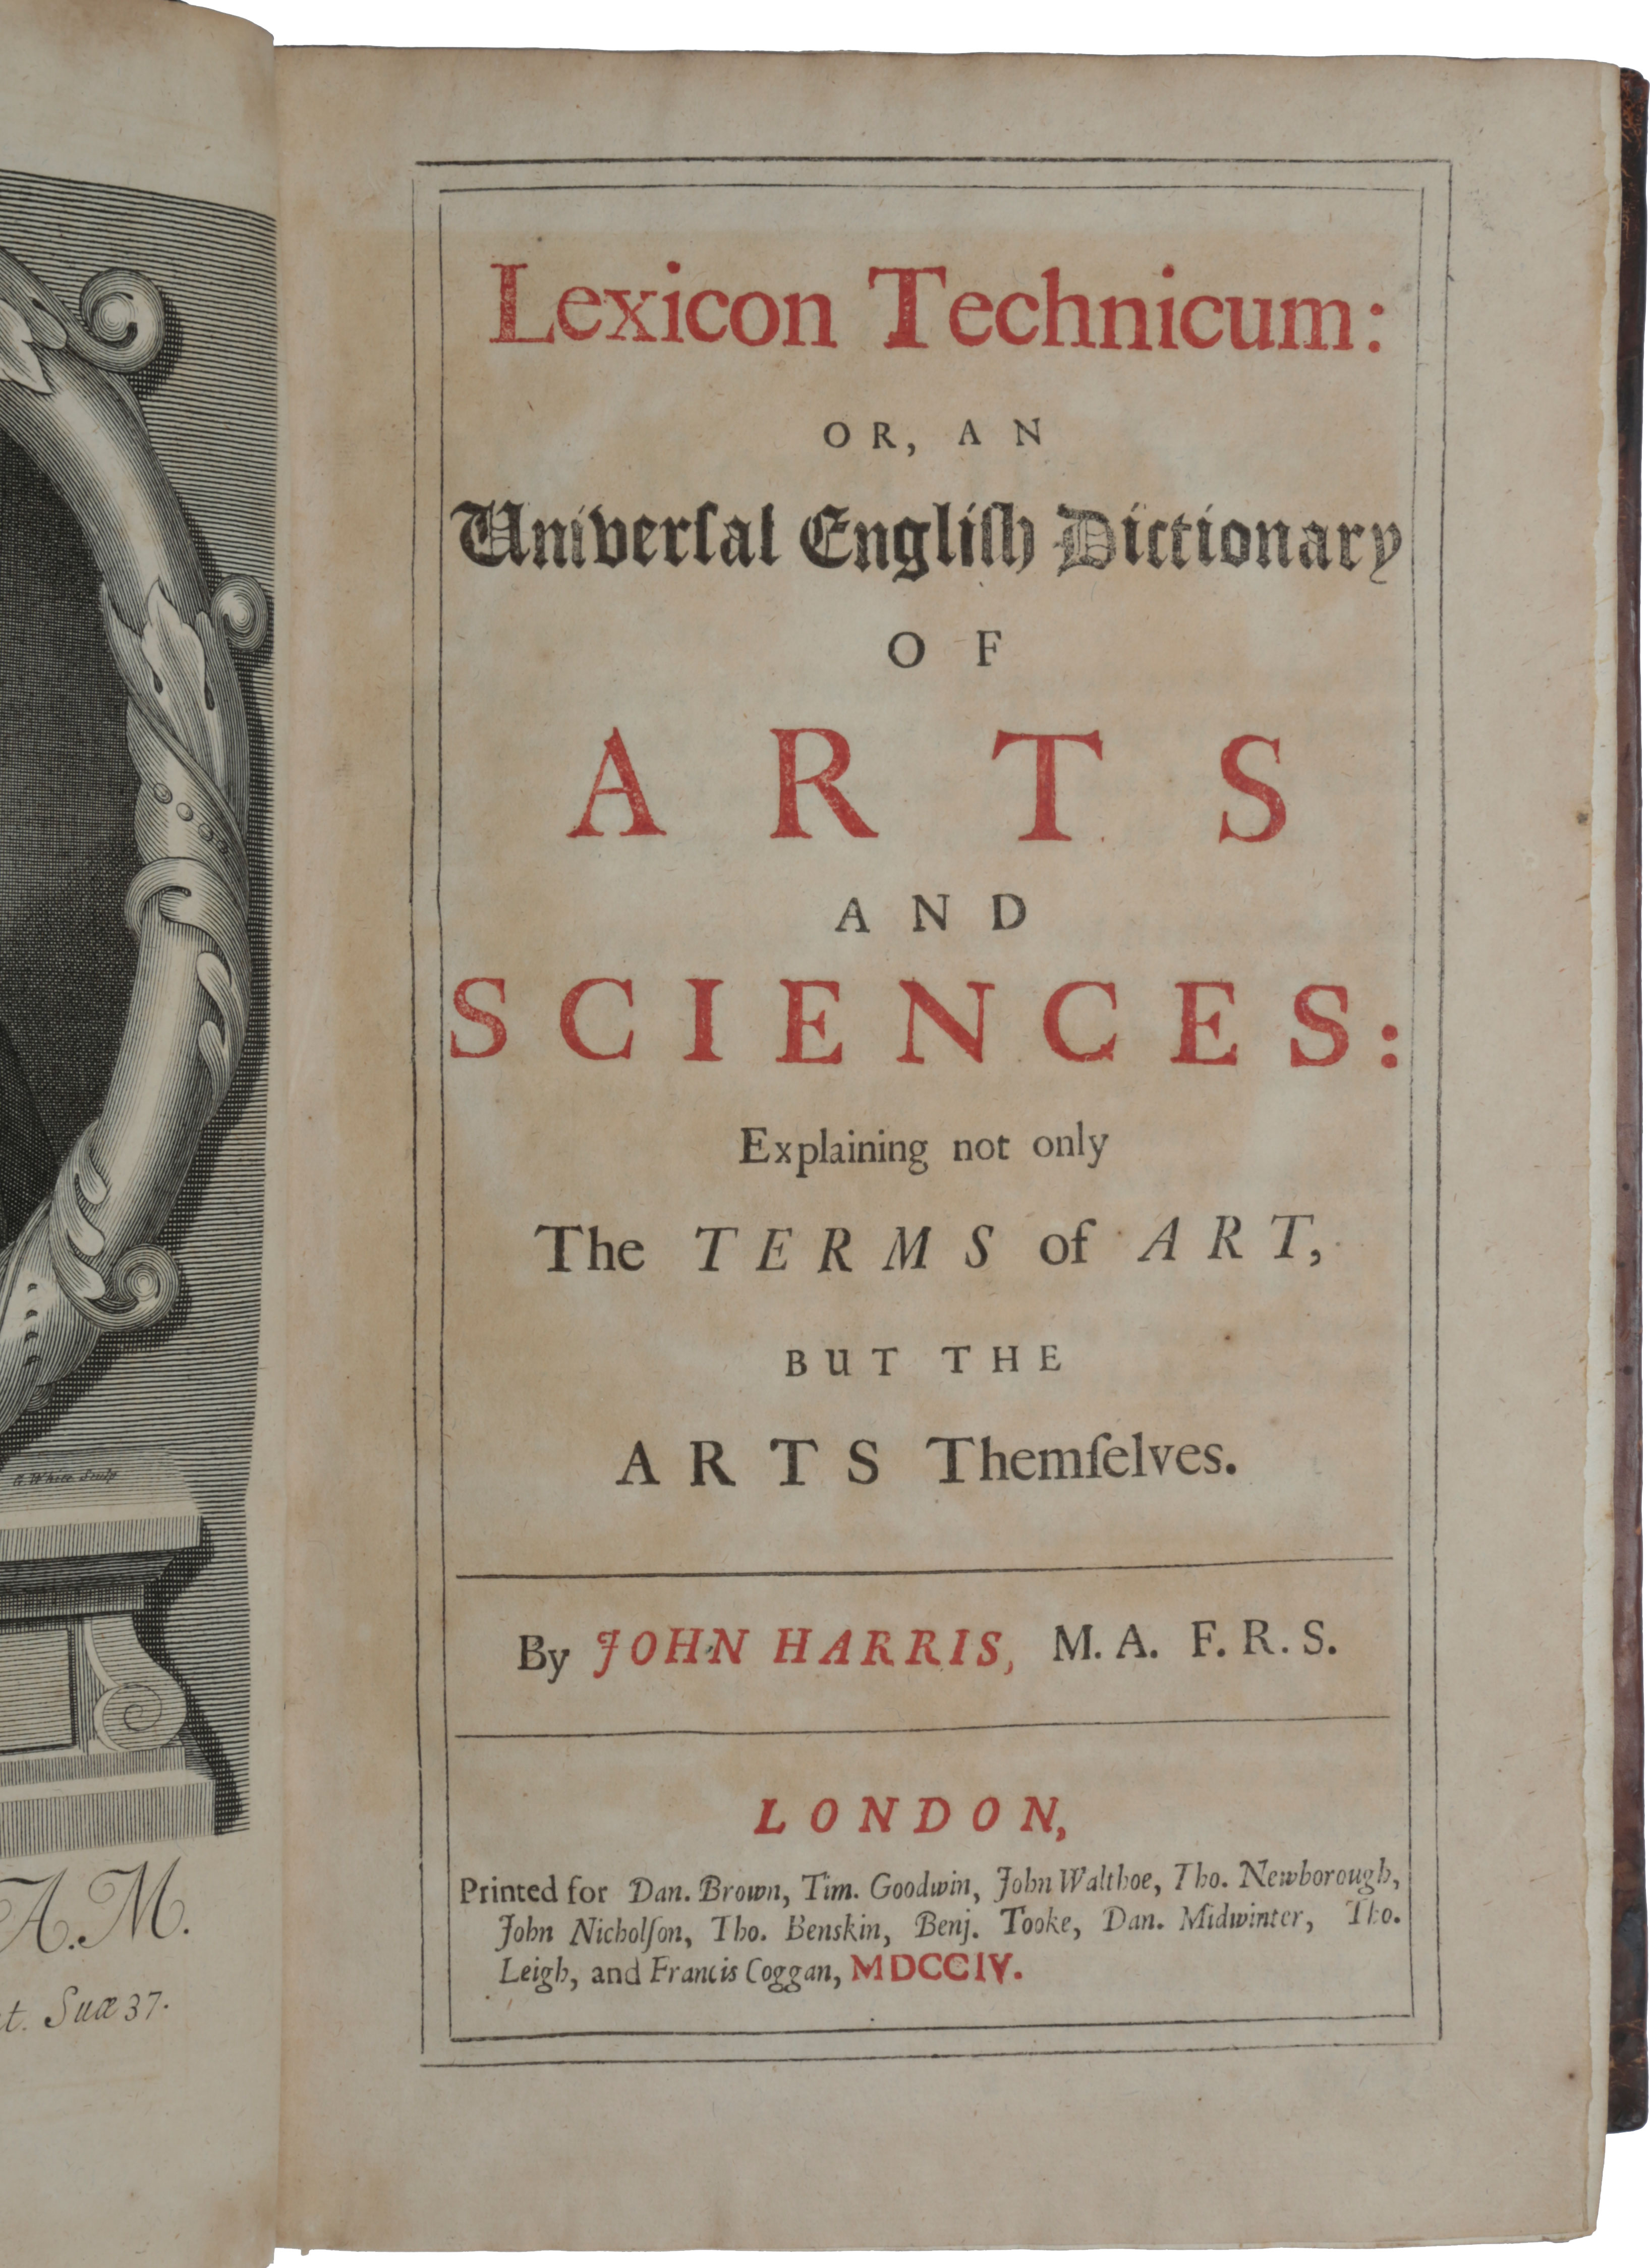 Lexicon Technicum: or, an Universal English Dictionary of Arts and Sciences: Explaining not only the Terms of Art, but the Arts Themselves. John HARRIS.